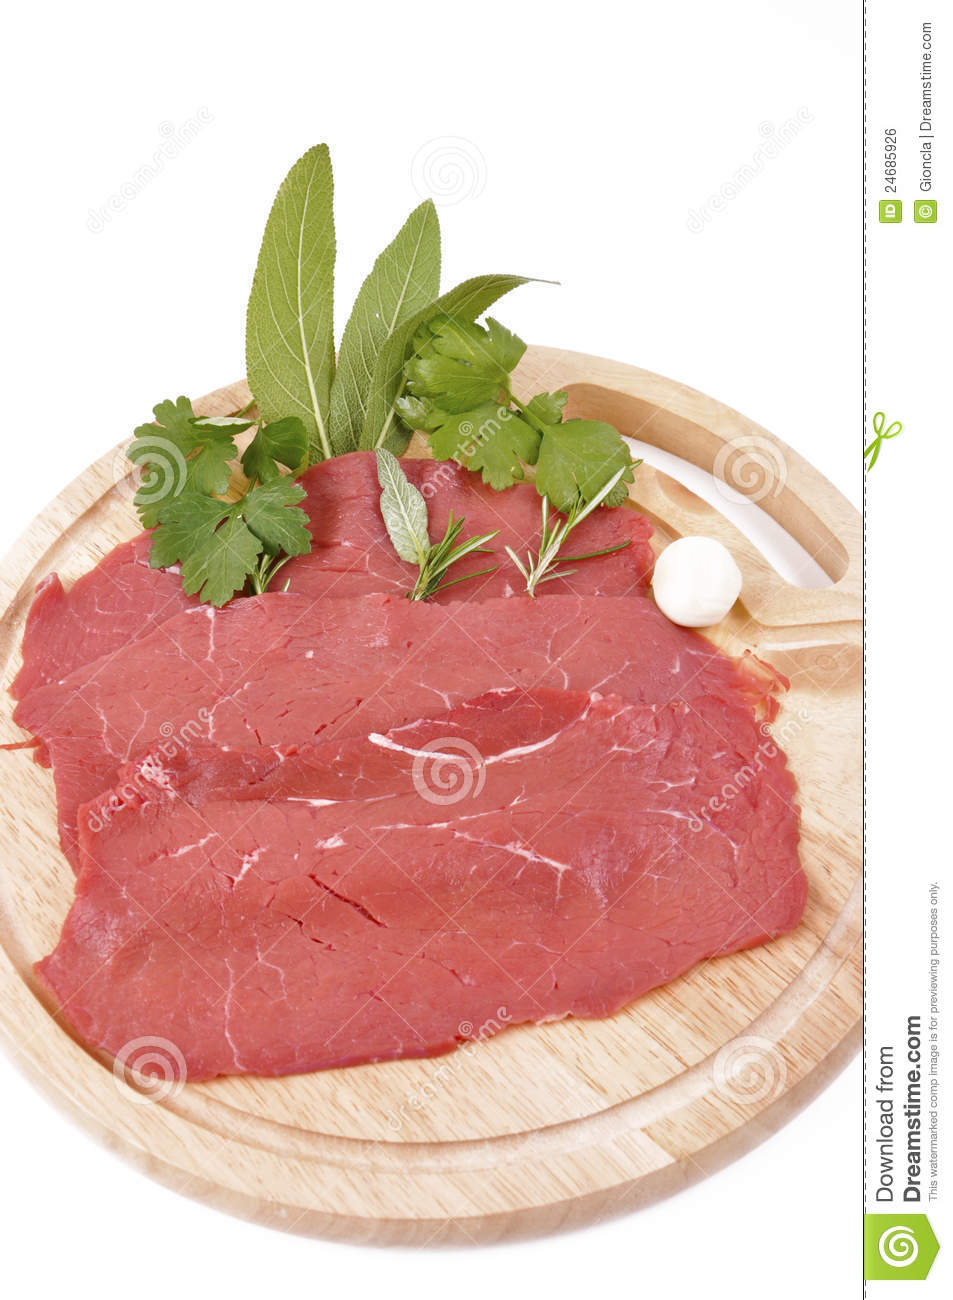 Carne Rossa Magra-lean Red Meat Royalty Free Stock Image